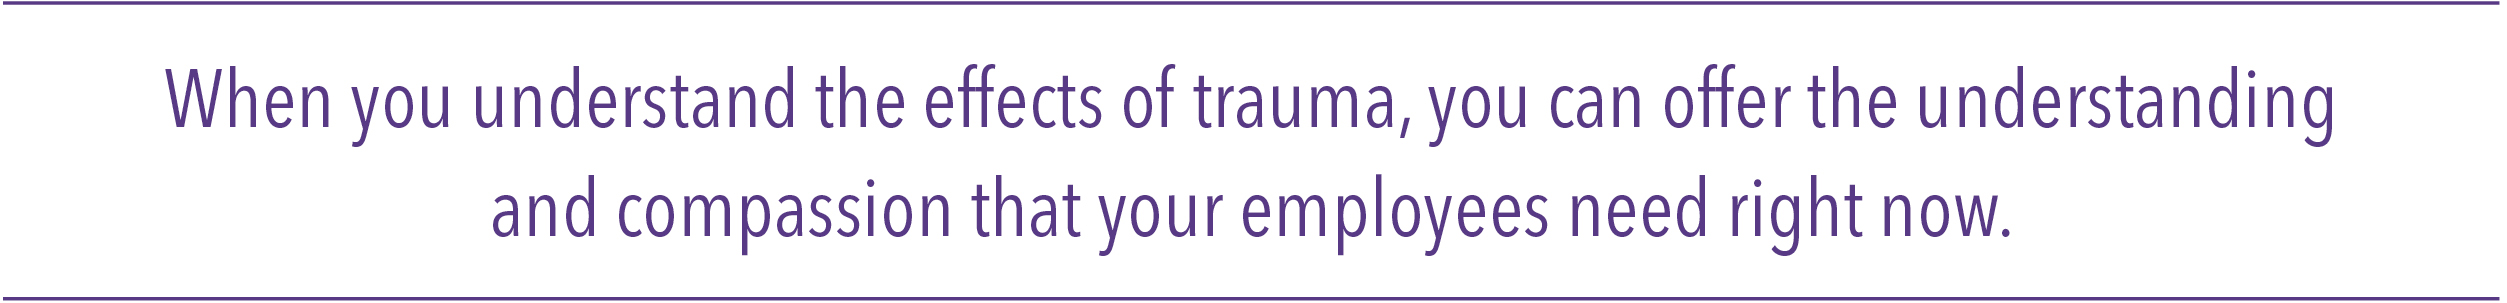 When you understand the effects of trauma, you can offer the understanding and compassion that your employees need right now.